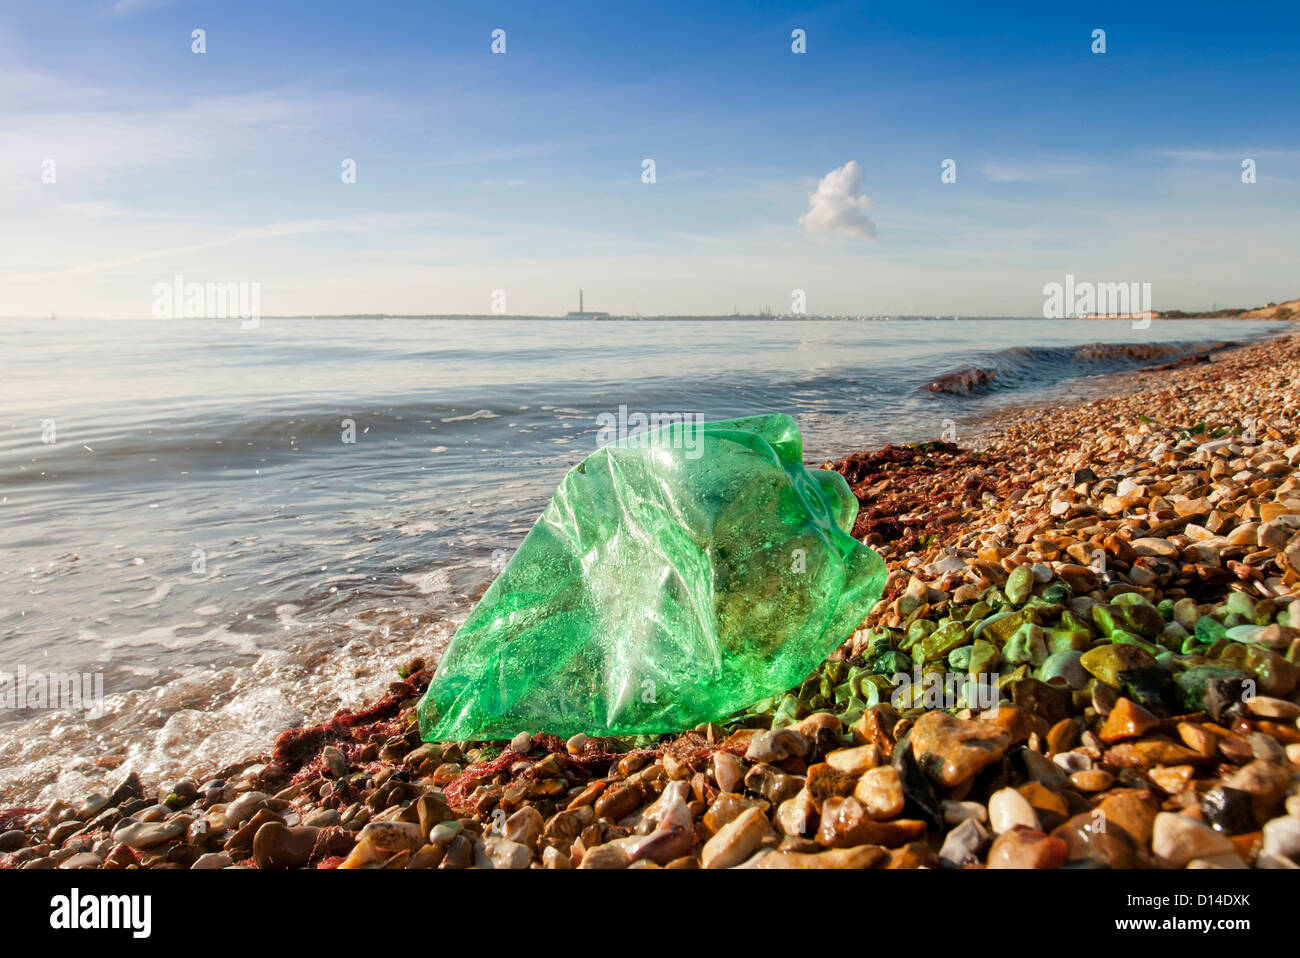 plastic bottle washed up onto a beach, coastal pollution - Stock Image